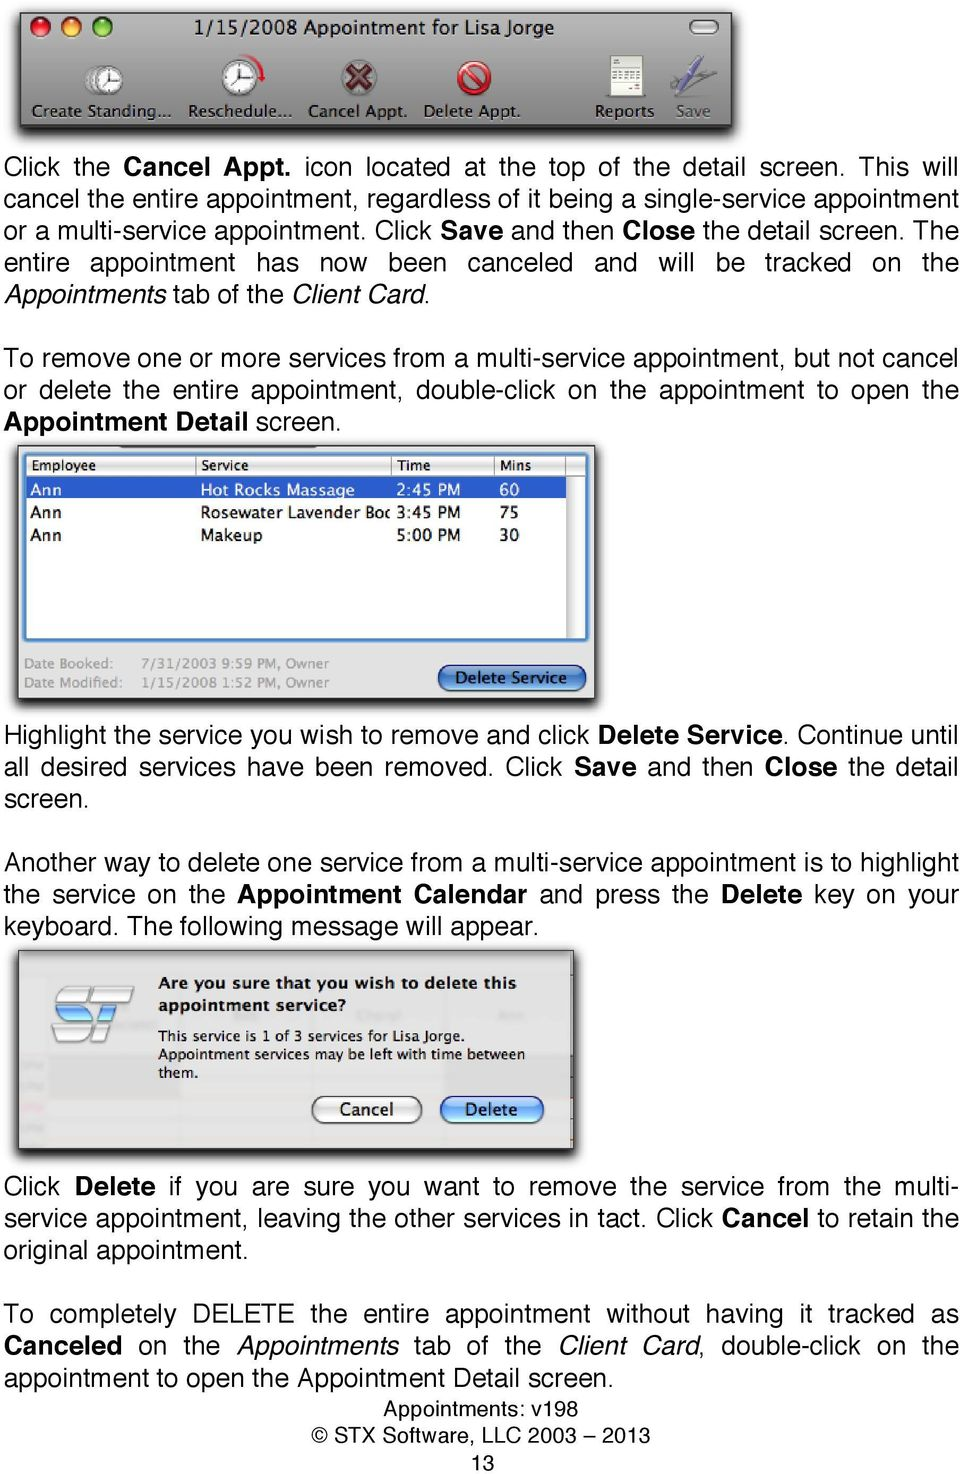 To remove one or more services from a multi-service appointment, but not cancel or delete the entire appointment, double-click on the appointment to open the Appointment Detail screen.